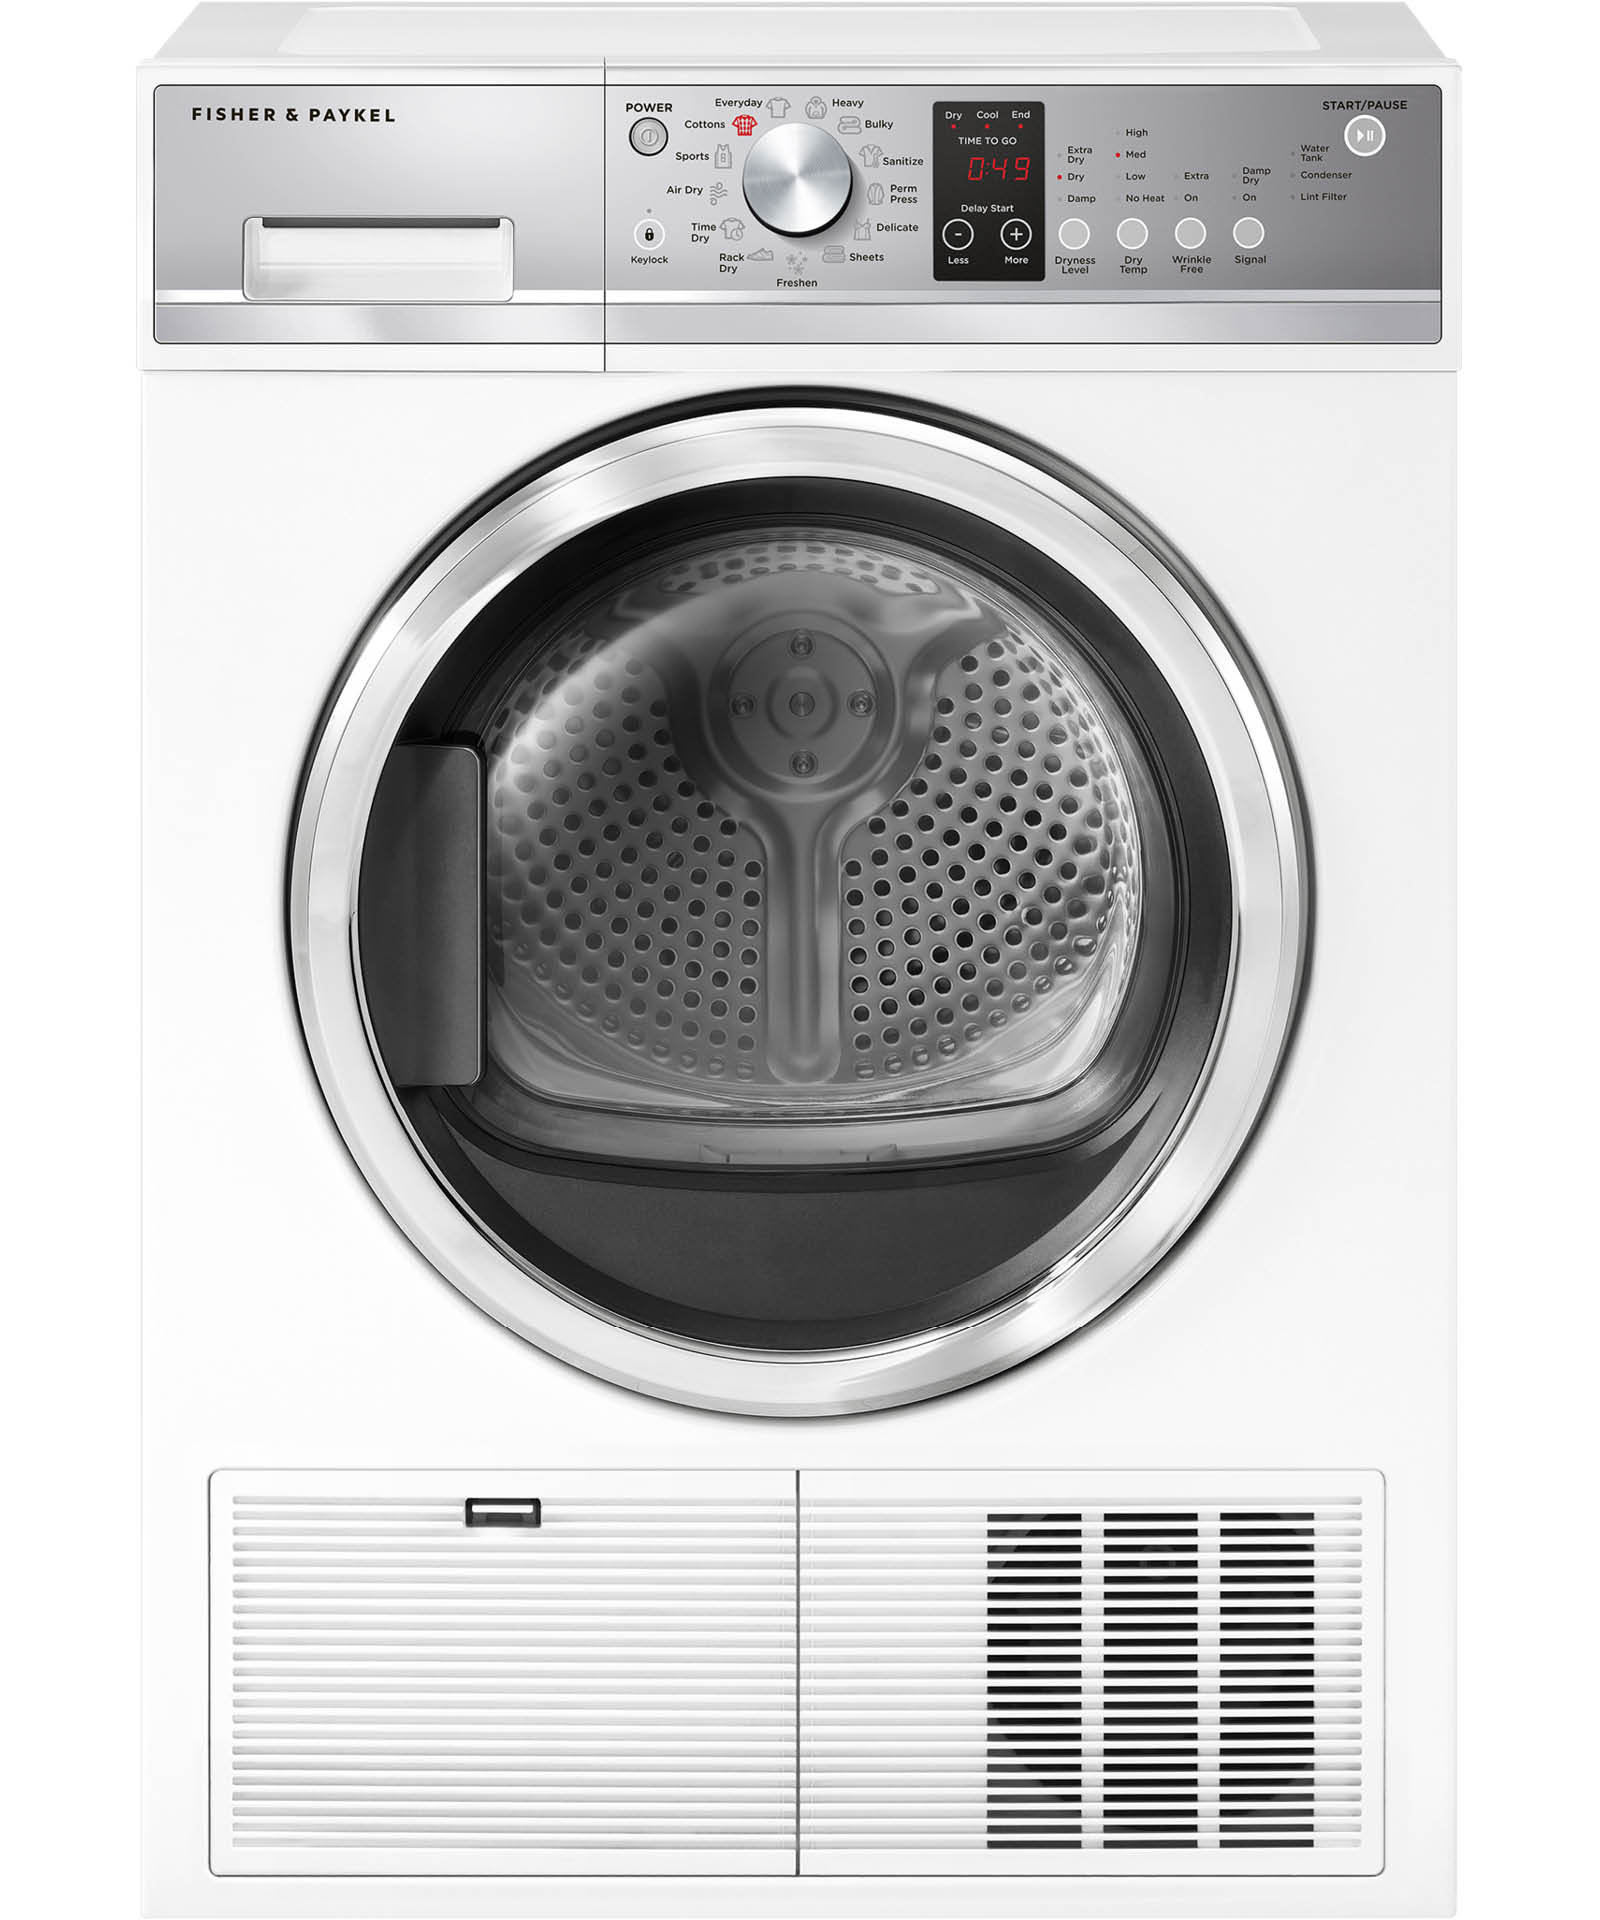 fisher and paykel dryer de50f56e1 manual